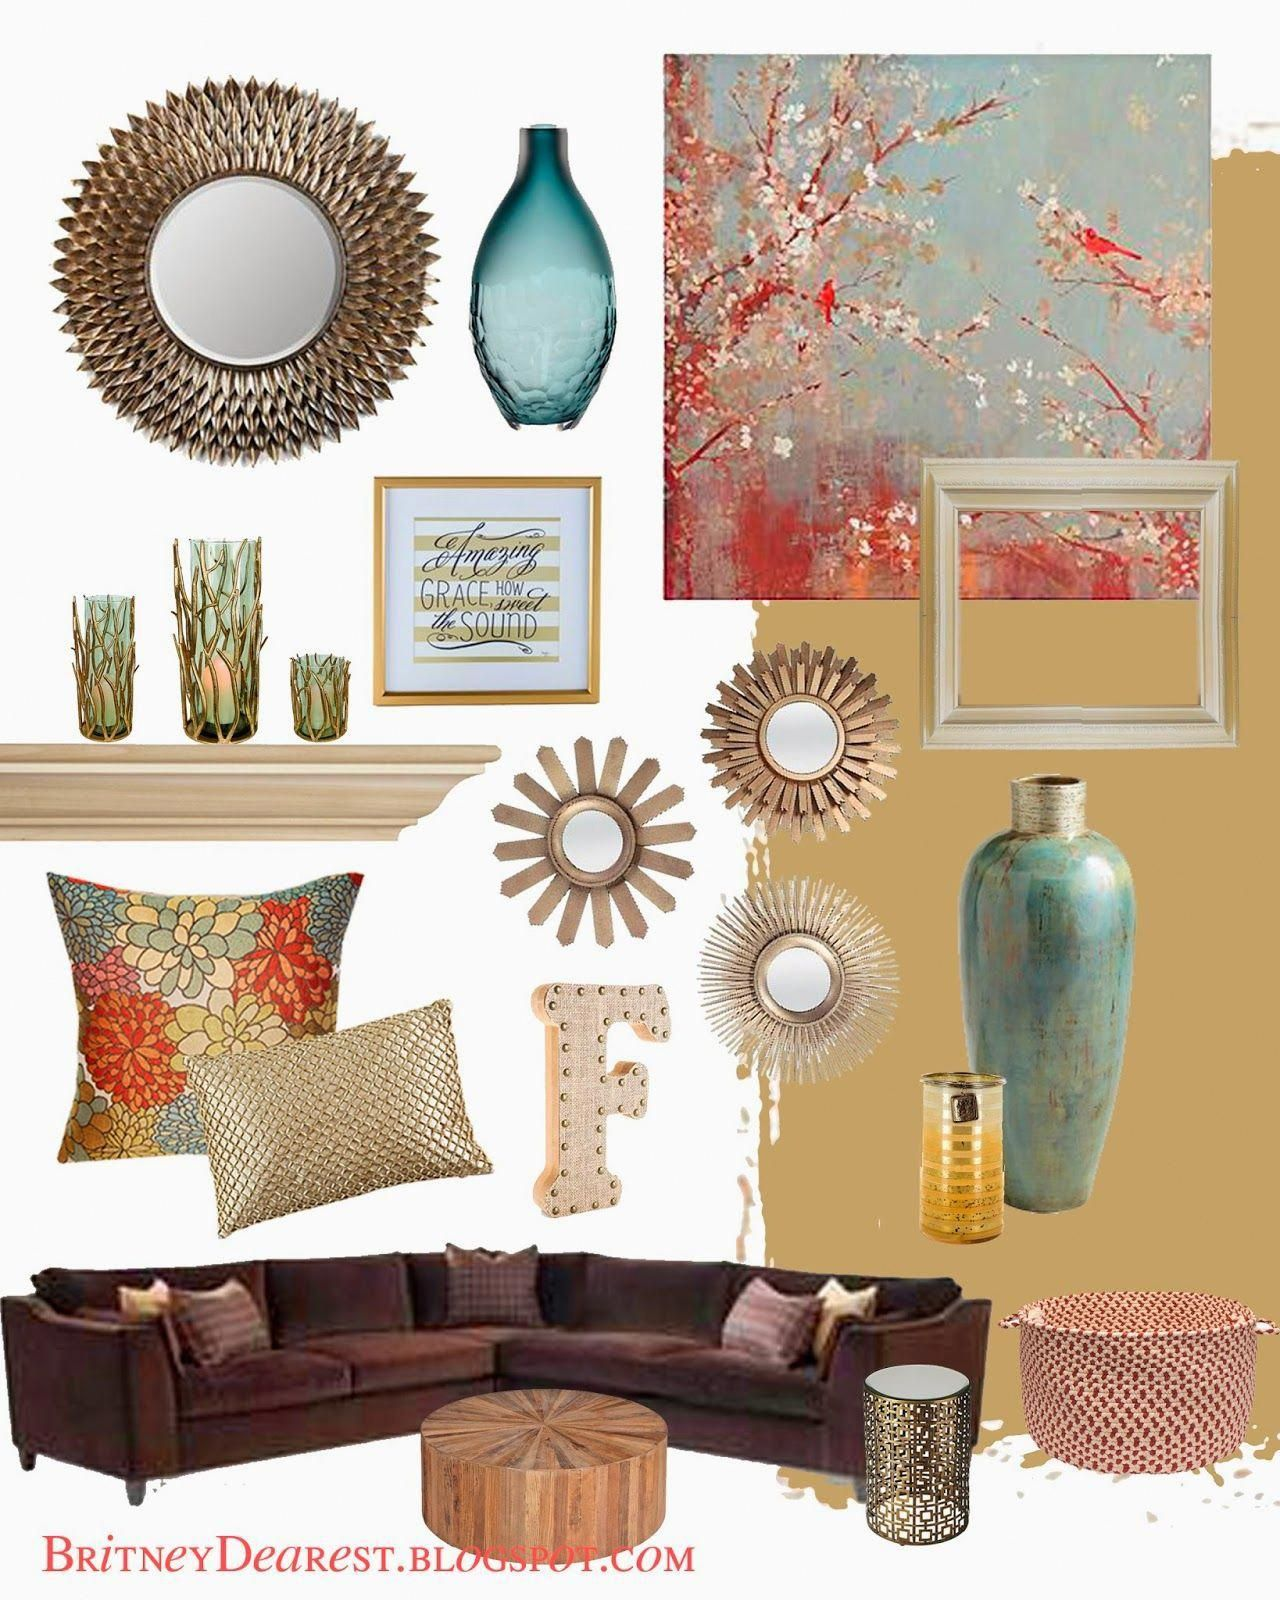 Living Room Style Ideas Home Interior Mood Board Home Decor Tan Red Blue Teal Coral Brown Gold Brown Living Room Decor Living Room Red Gold Living Room #turquoise #living #room #decor #ideas